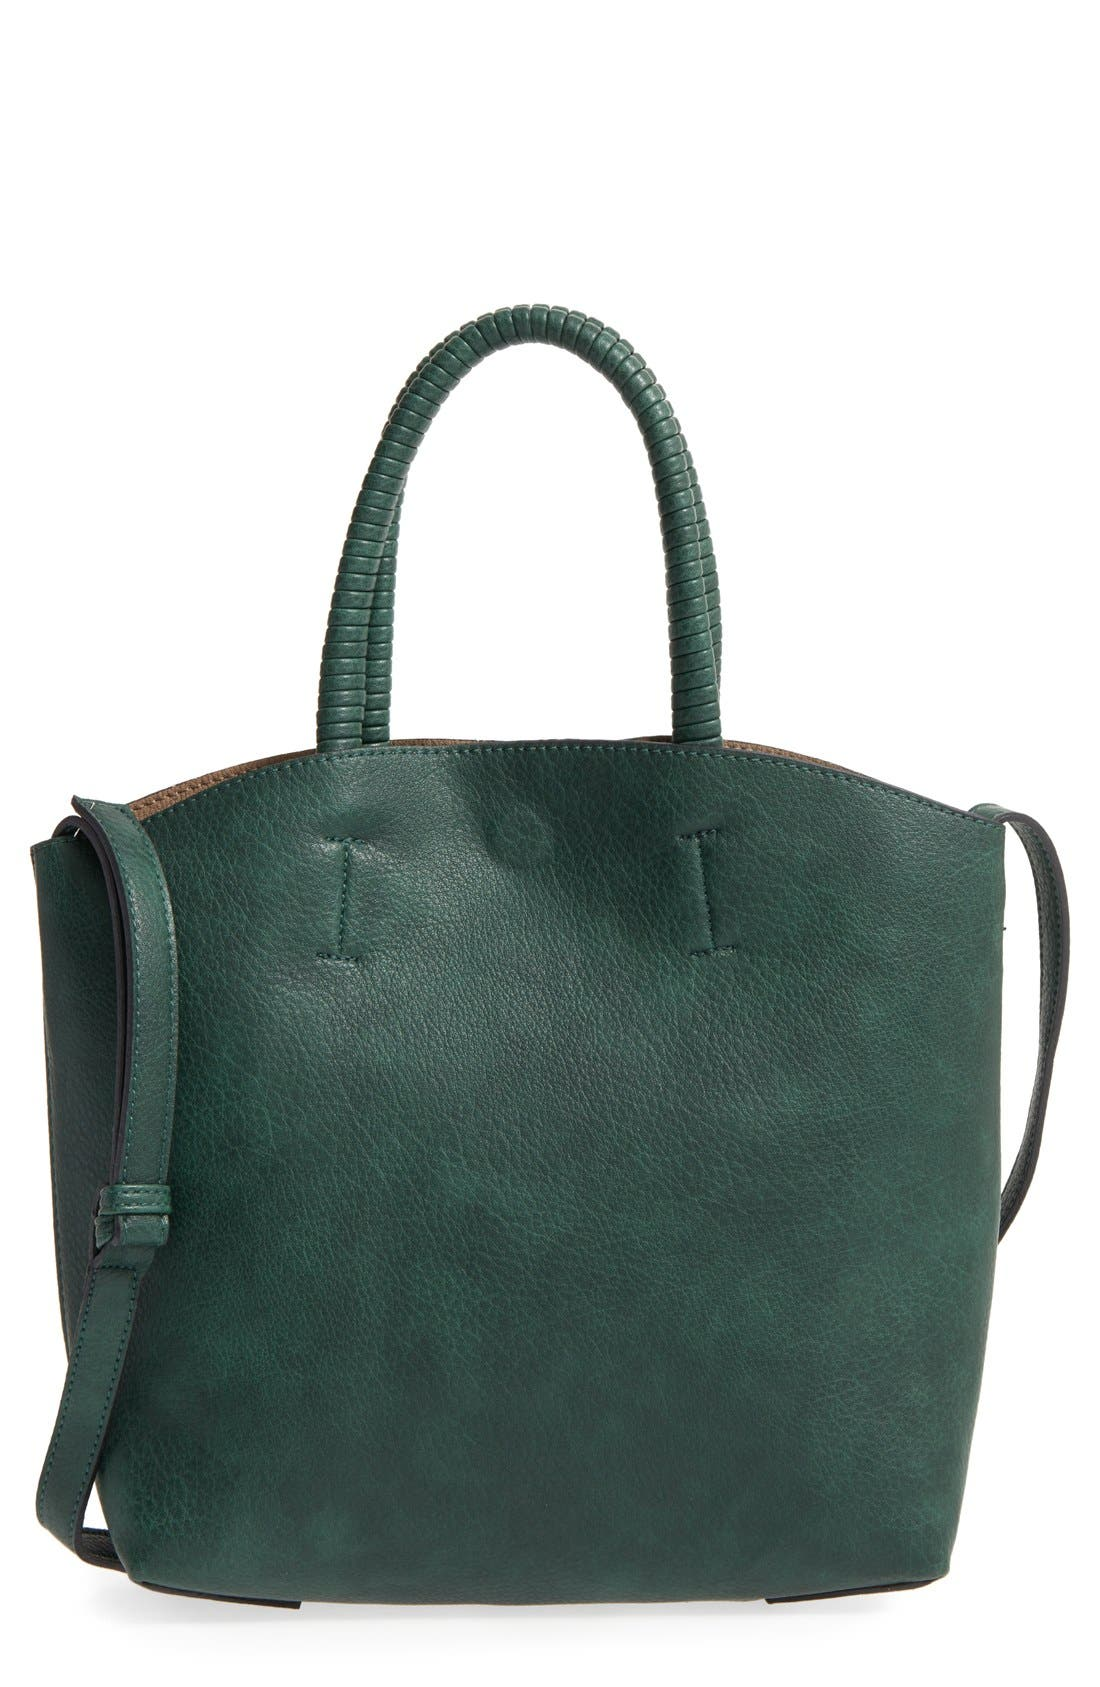 Alternate Image 1 Selected - Street Level Faux Leather Dome Tote